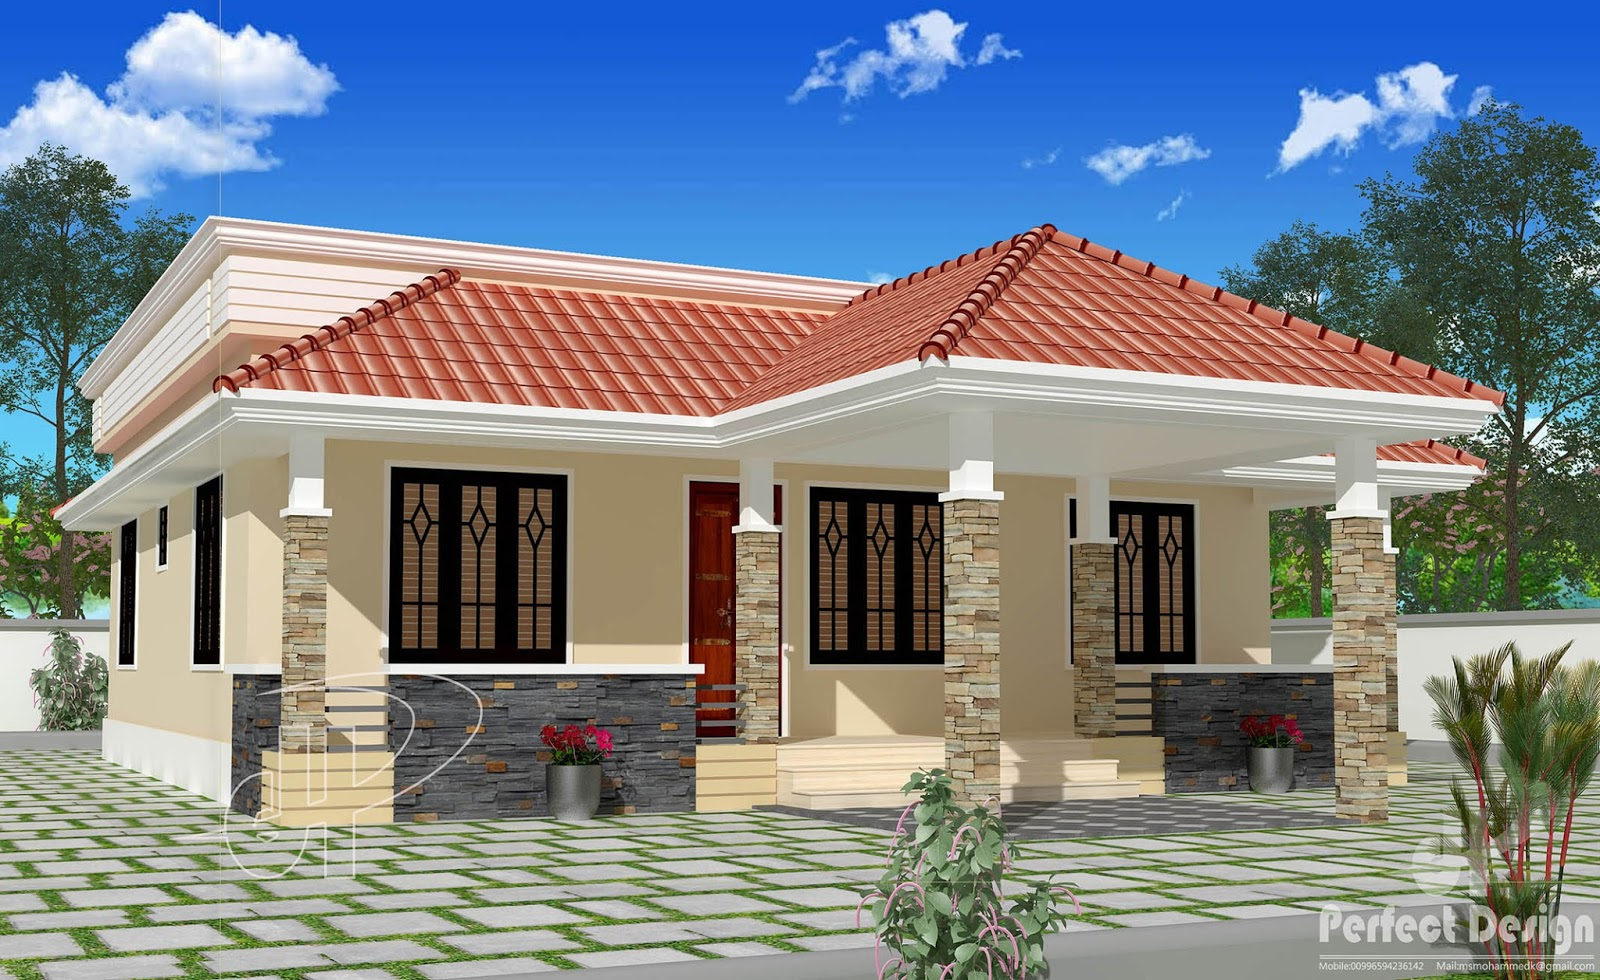 Build Your Dream One Story Home With These 12 Beautiful: latest simple house design